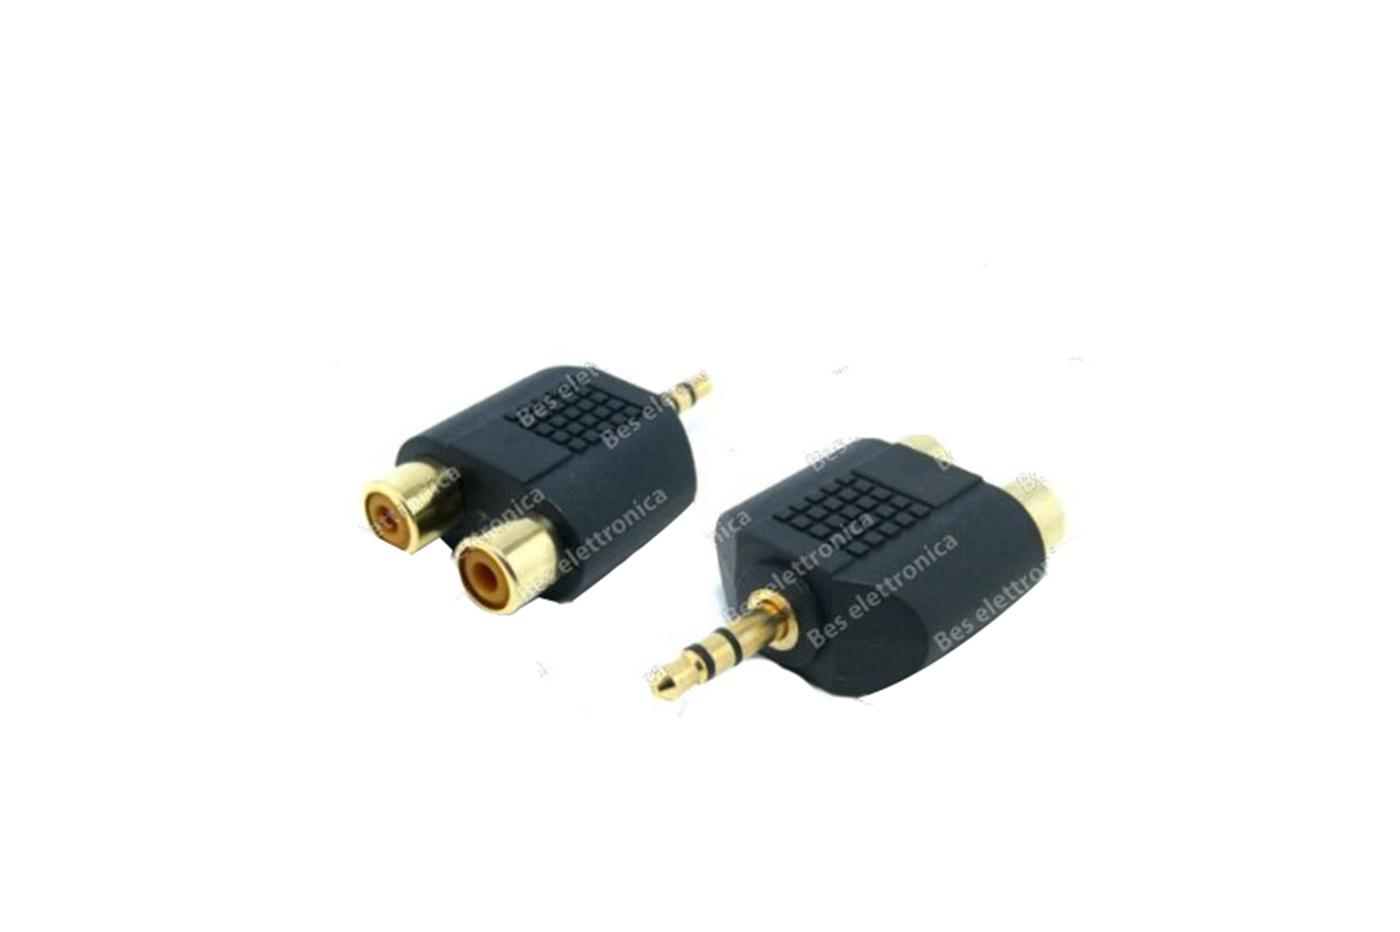 ADATTATORE AUDIO STEREO SPINA JACK 3.5 MM MASCHIO 2 RCA FEMMINA